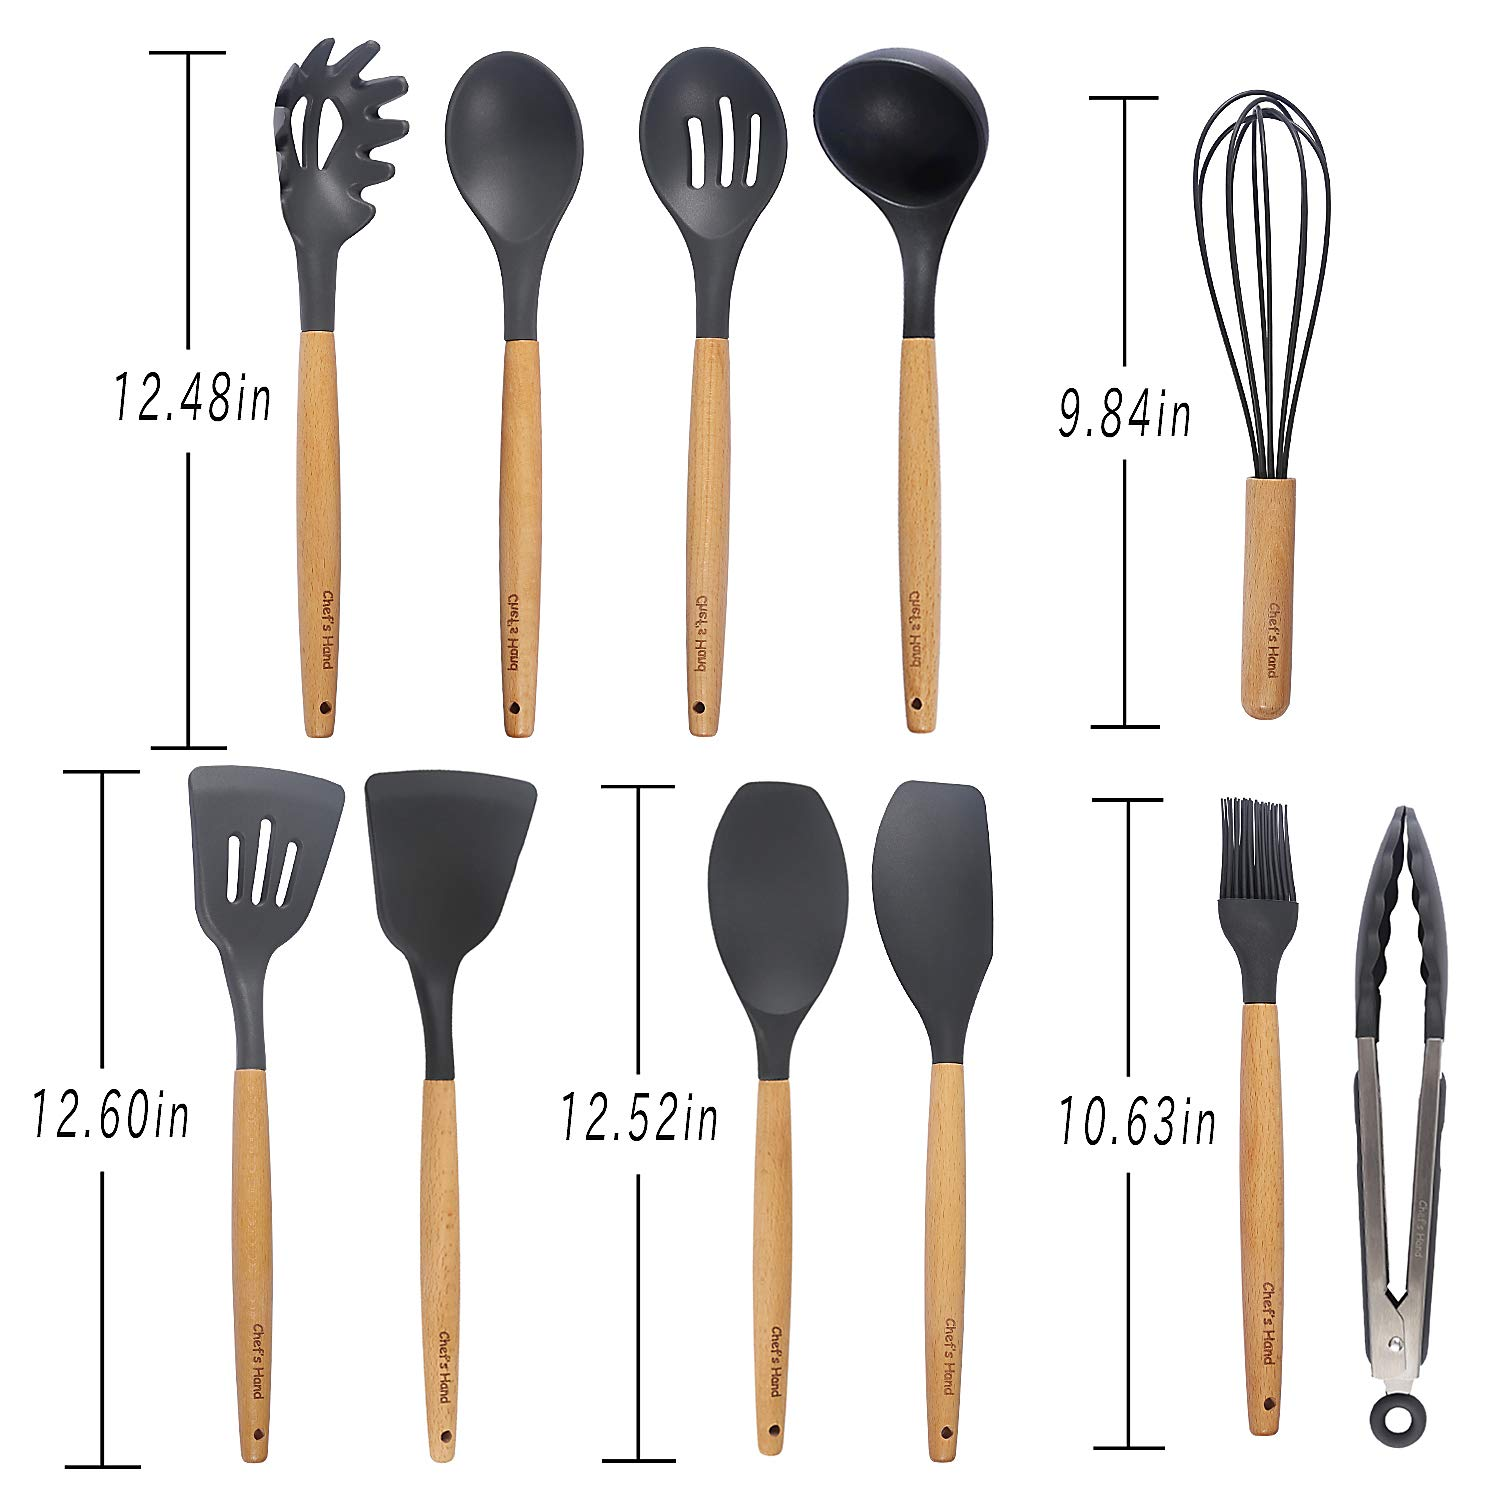 Kitchen Utensil Set - 11 Piece Cooking Utensils - Non-stick Silicone and Wooden Utensils. BPA Free, Non Toxic Turner Tongs Spatula Spoon Set. Best Chef Kitchen Tool Set Gray - Chef's Hand by Chef's Hand (Image #8)